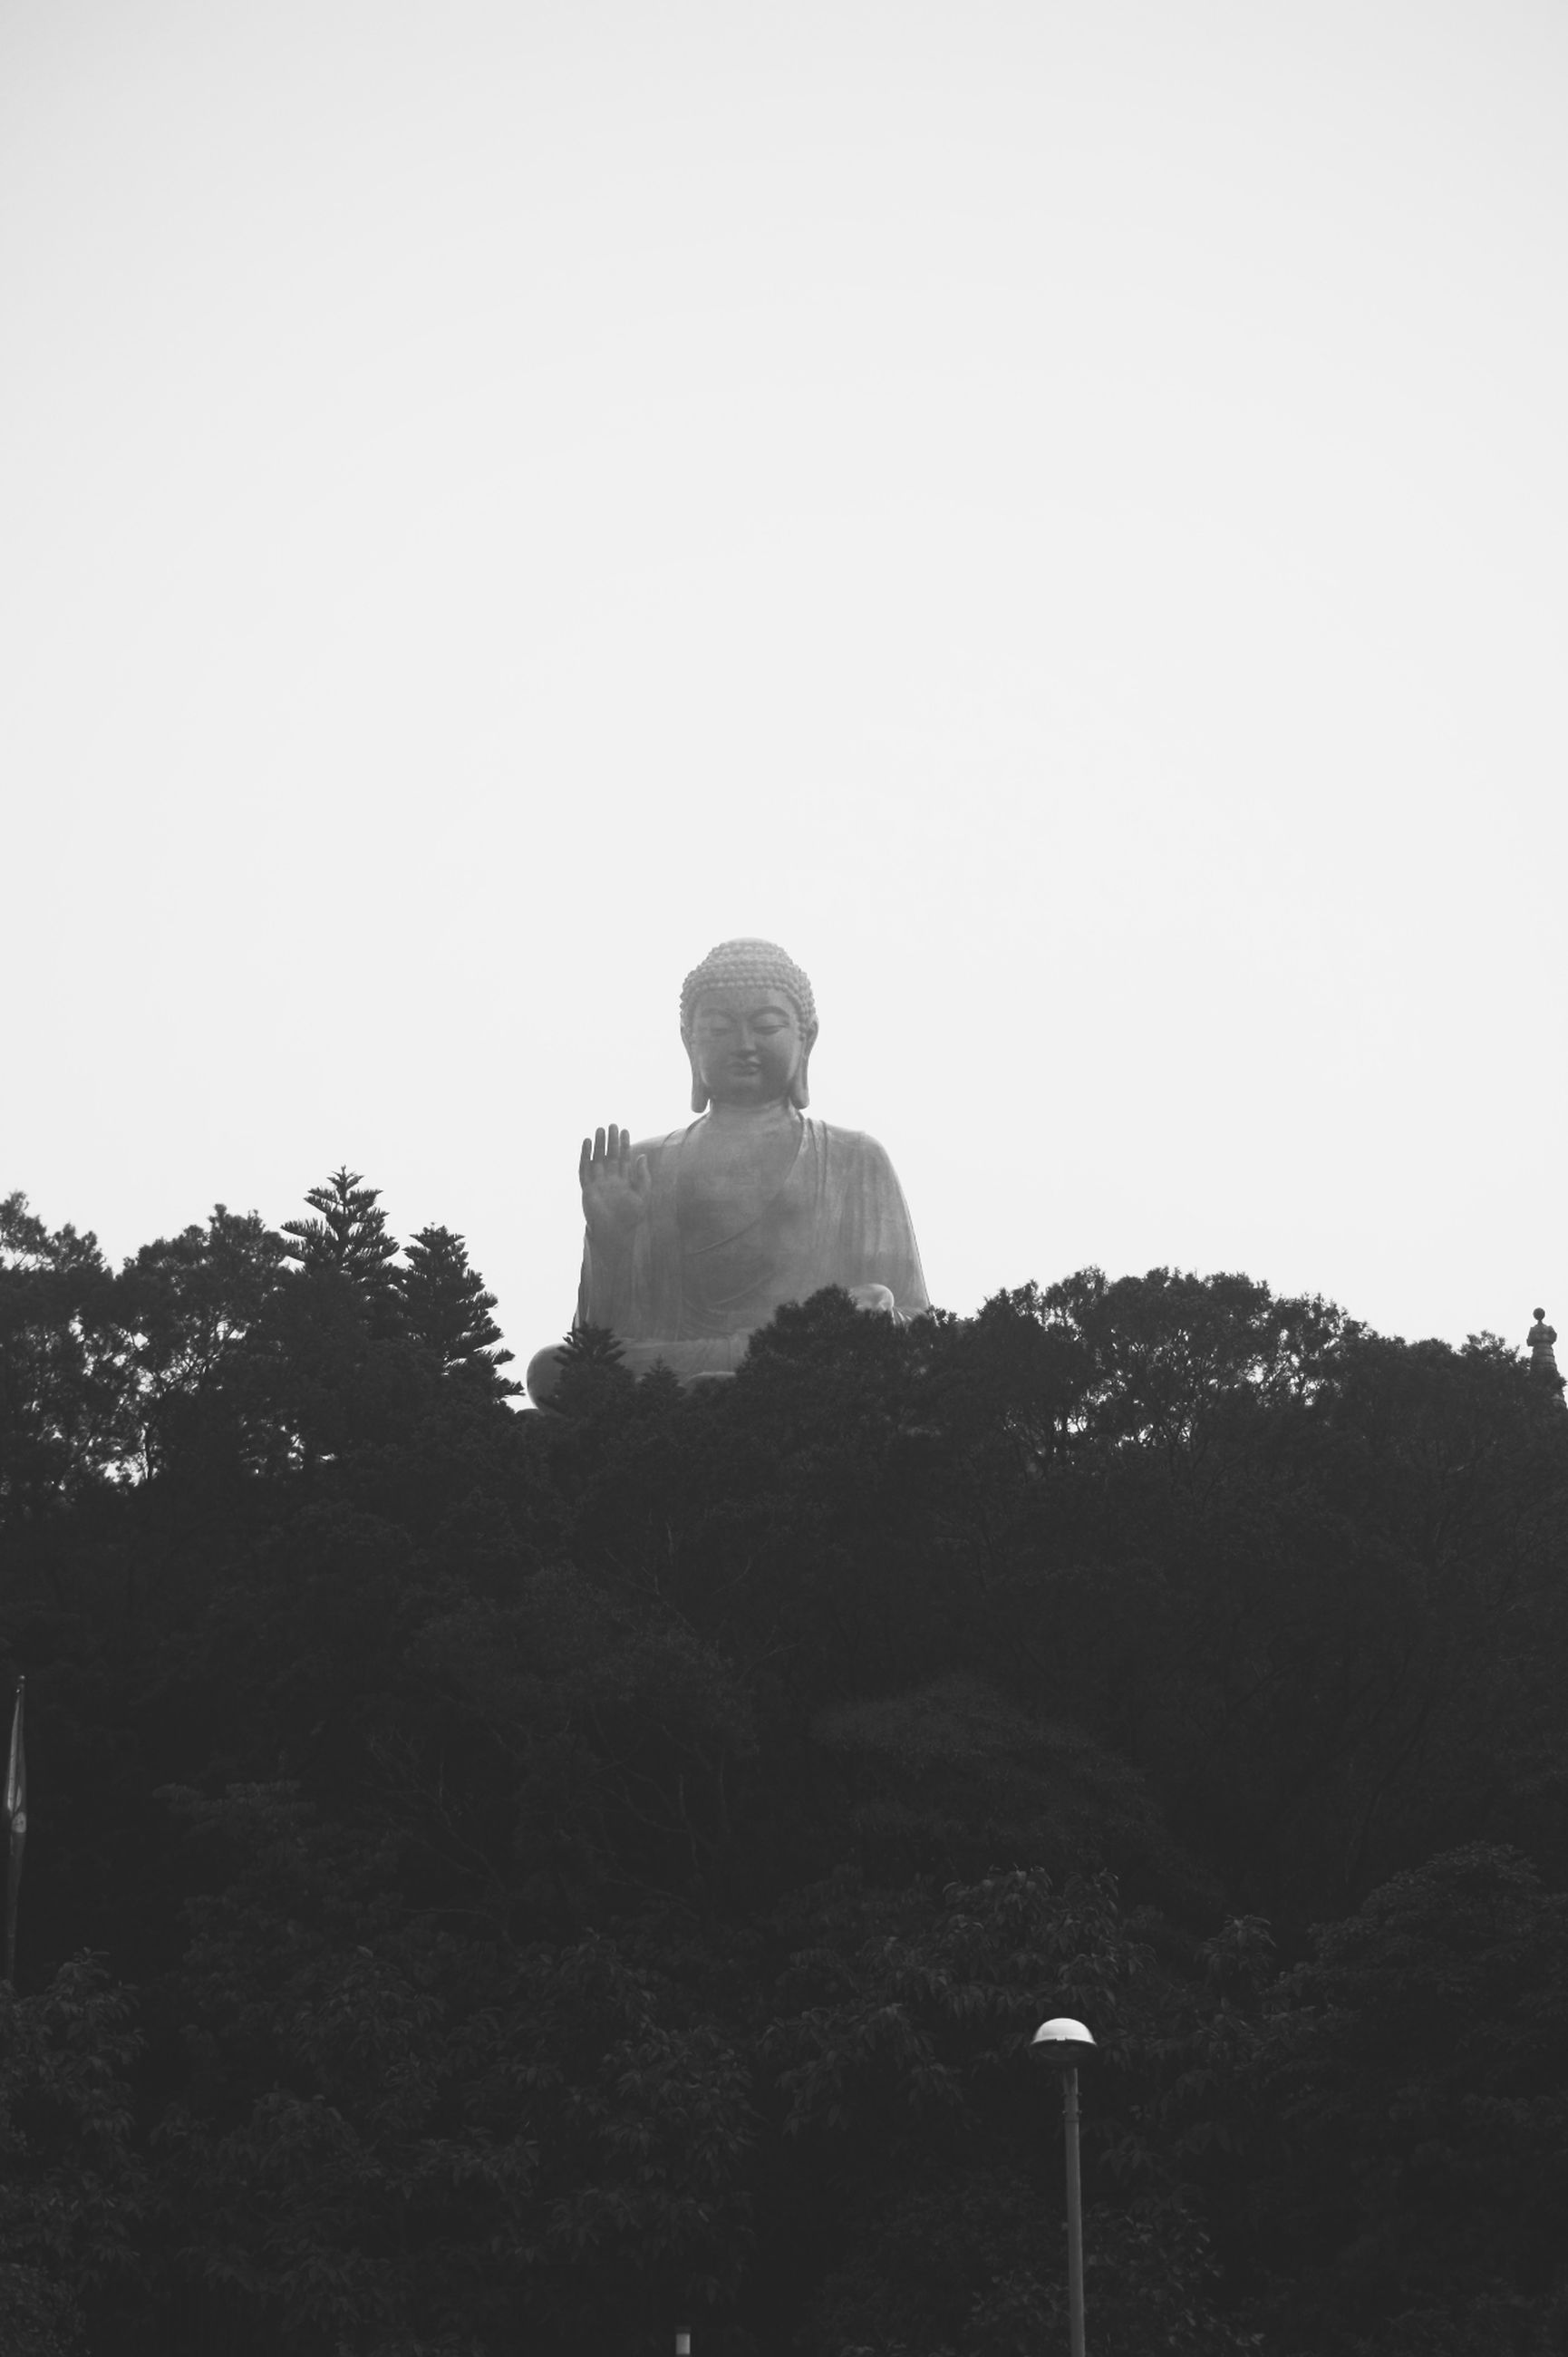 clear sky, statue, low angle view, copy space, sculpture, human representation, tree, art, art and craft, sky, creativity, religion, built structure, outdoors, tranquility, spirituality, silhouette, memorial